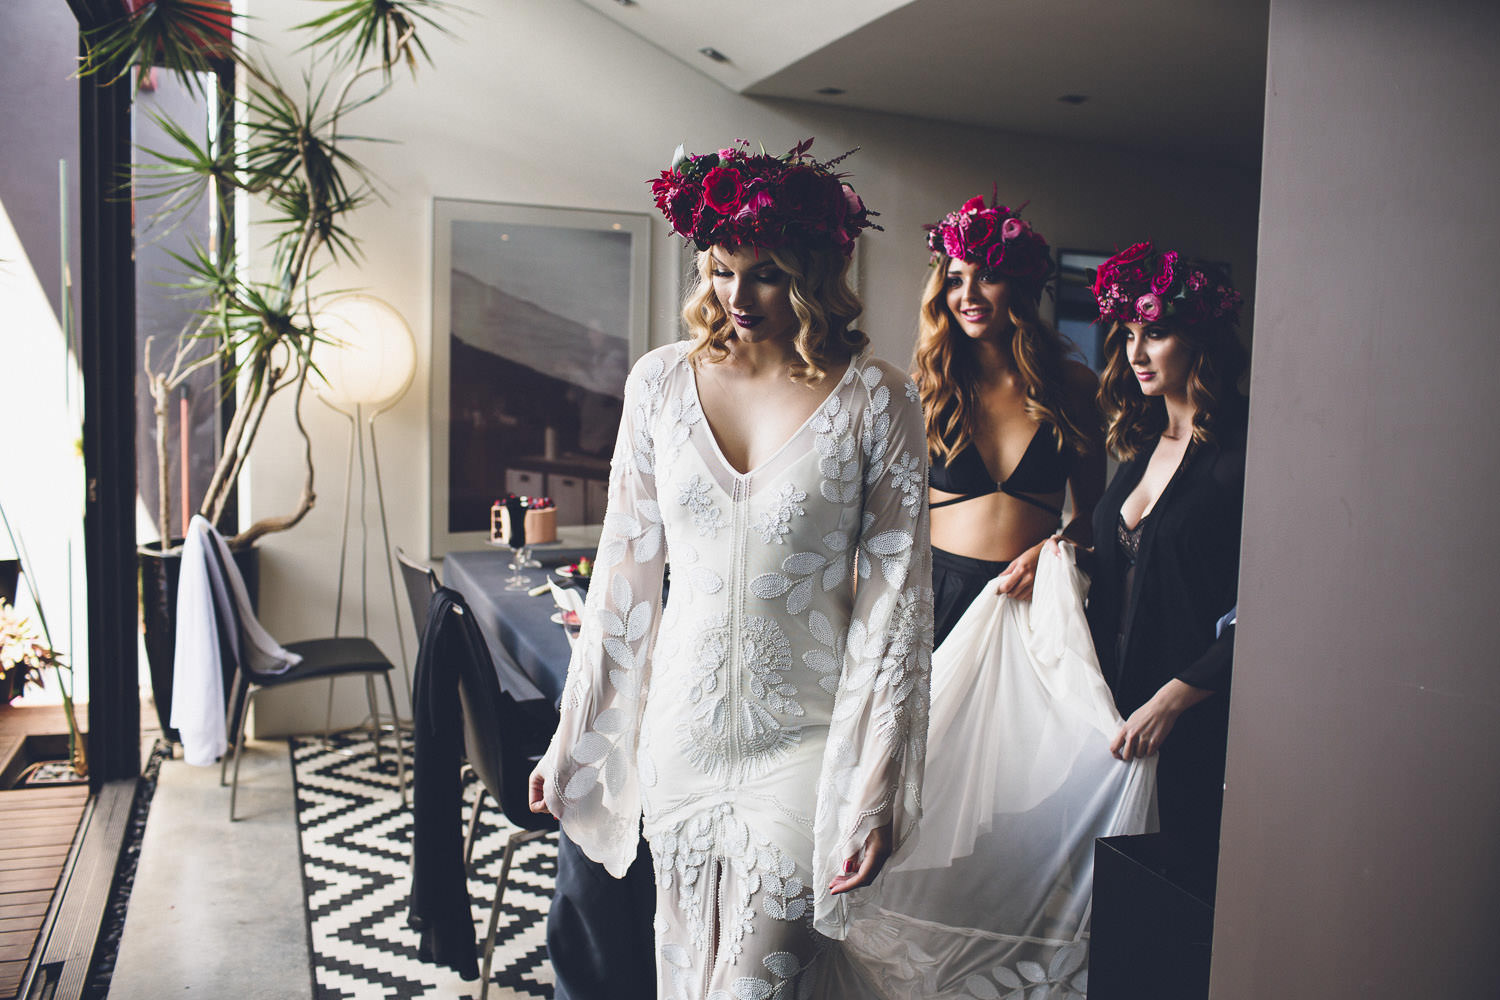 weareallstardust_perth_bridesmaids_style_decadent_preparation-35